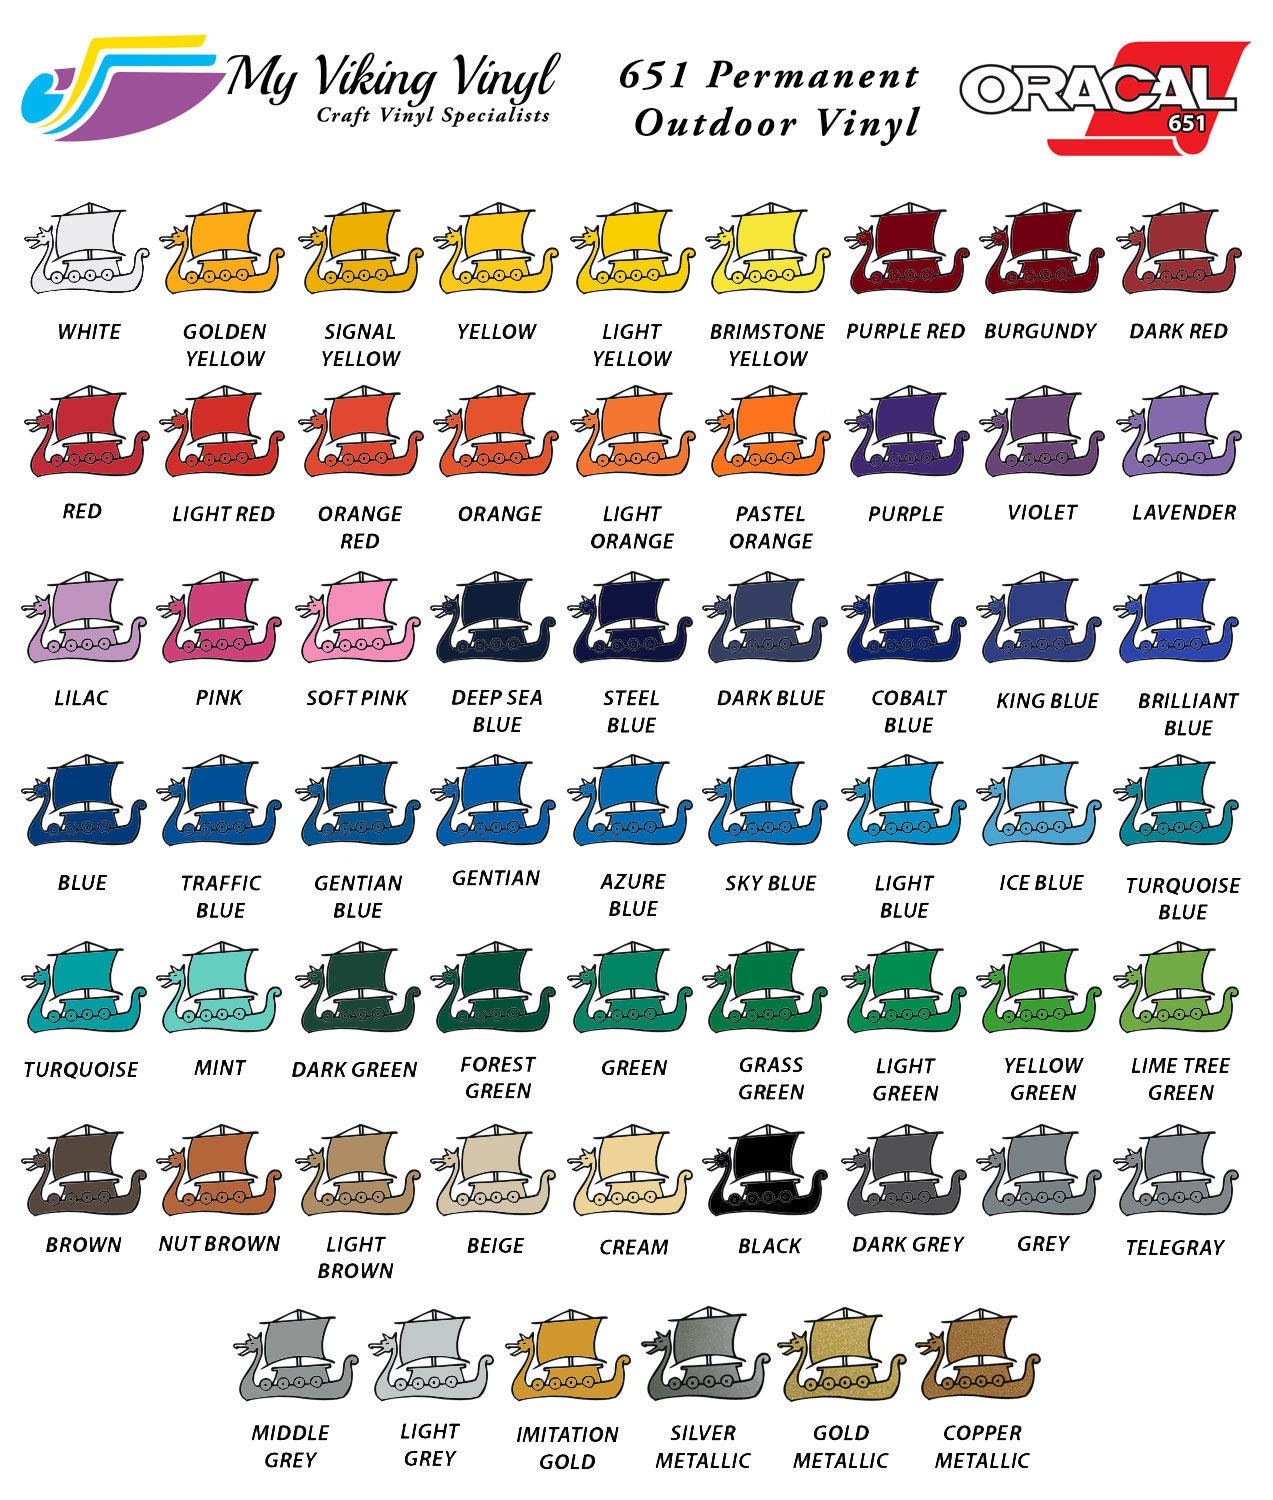 099 - Cricut Vinyl Colors